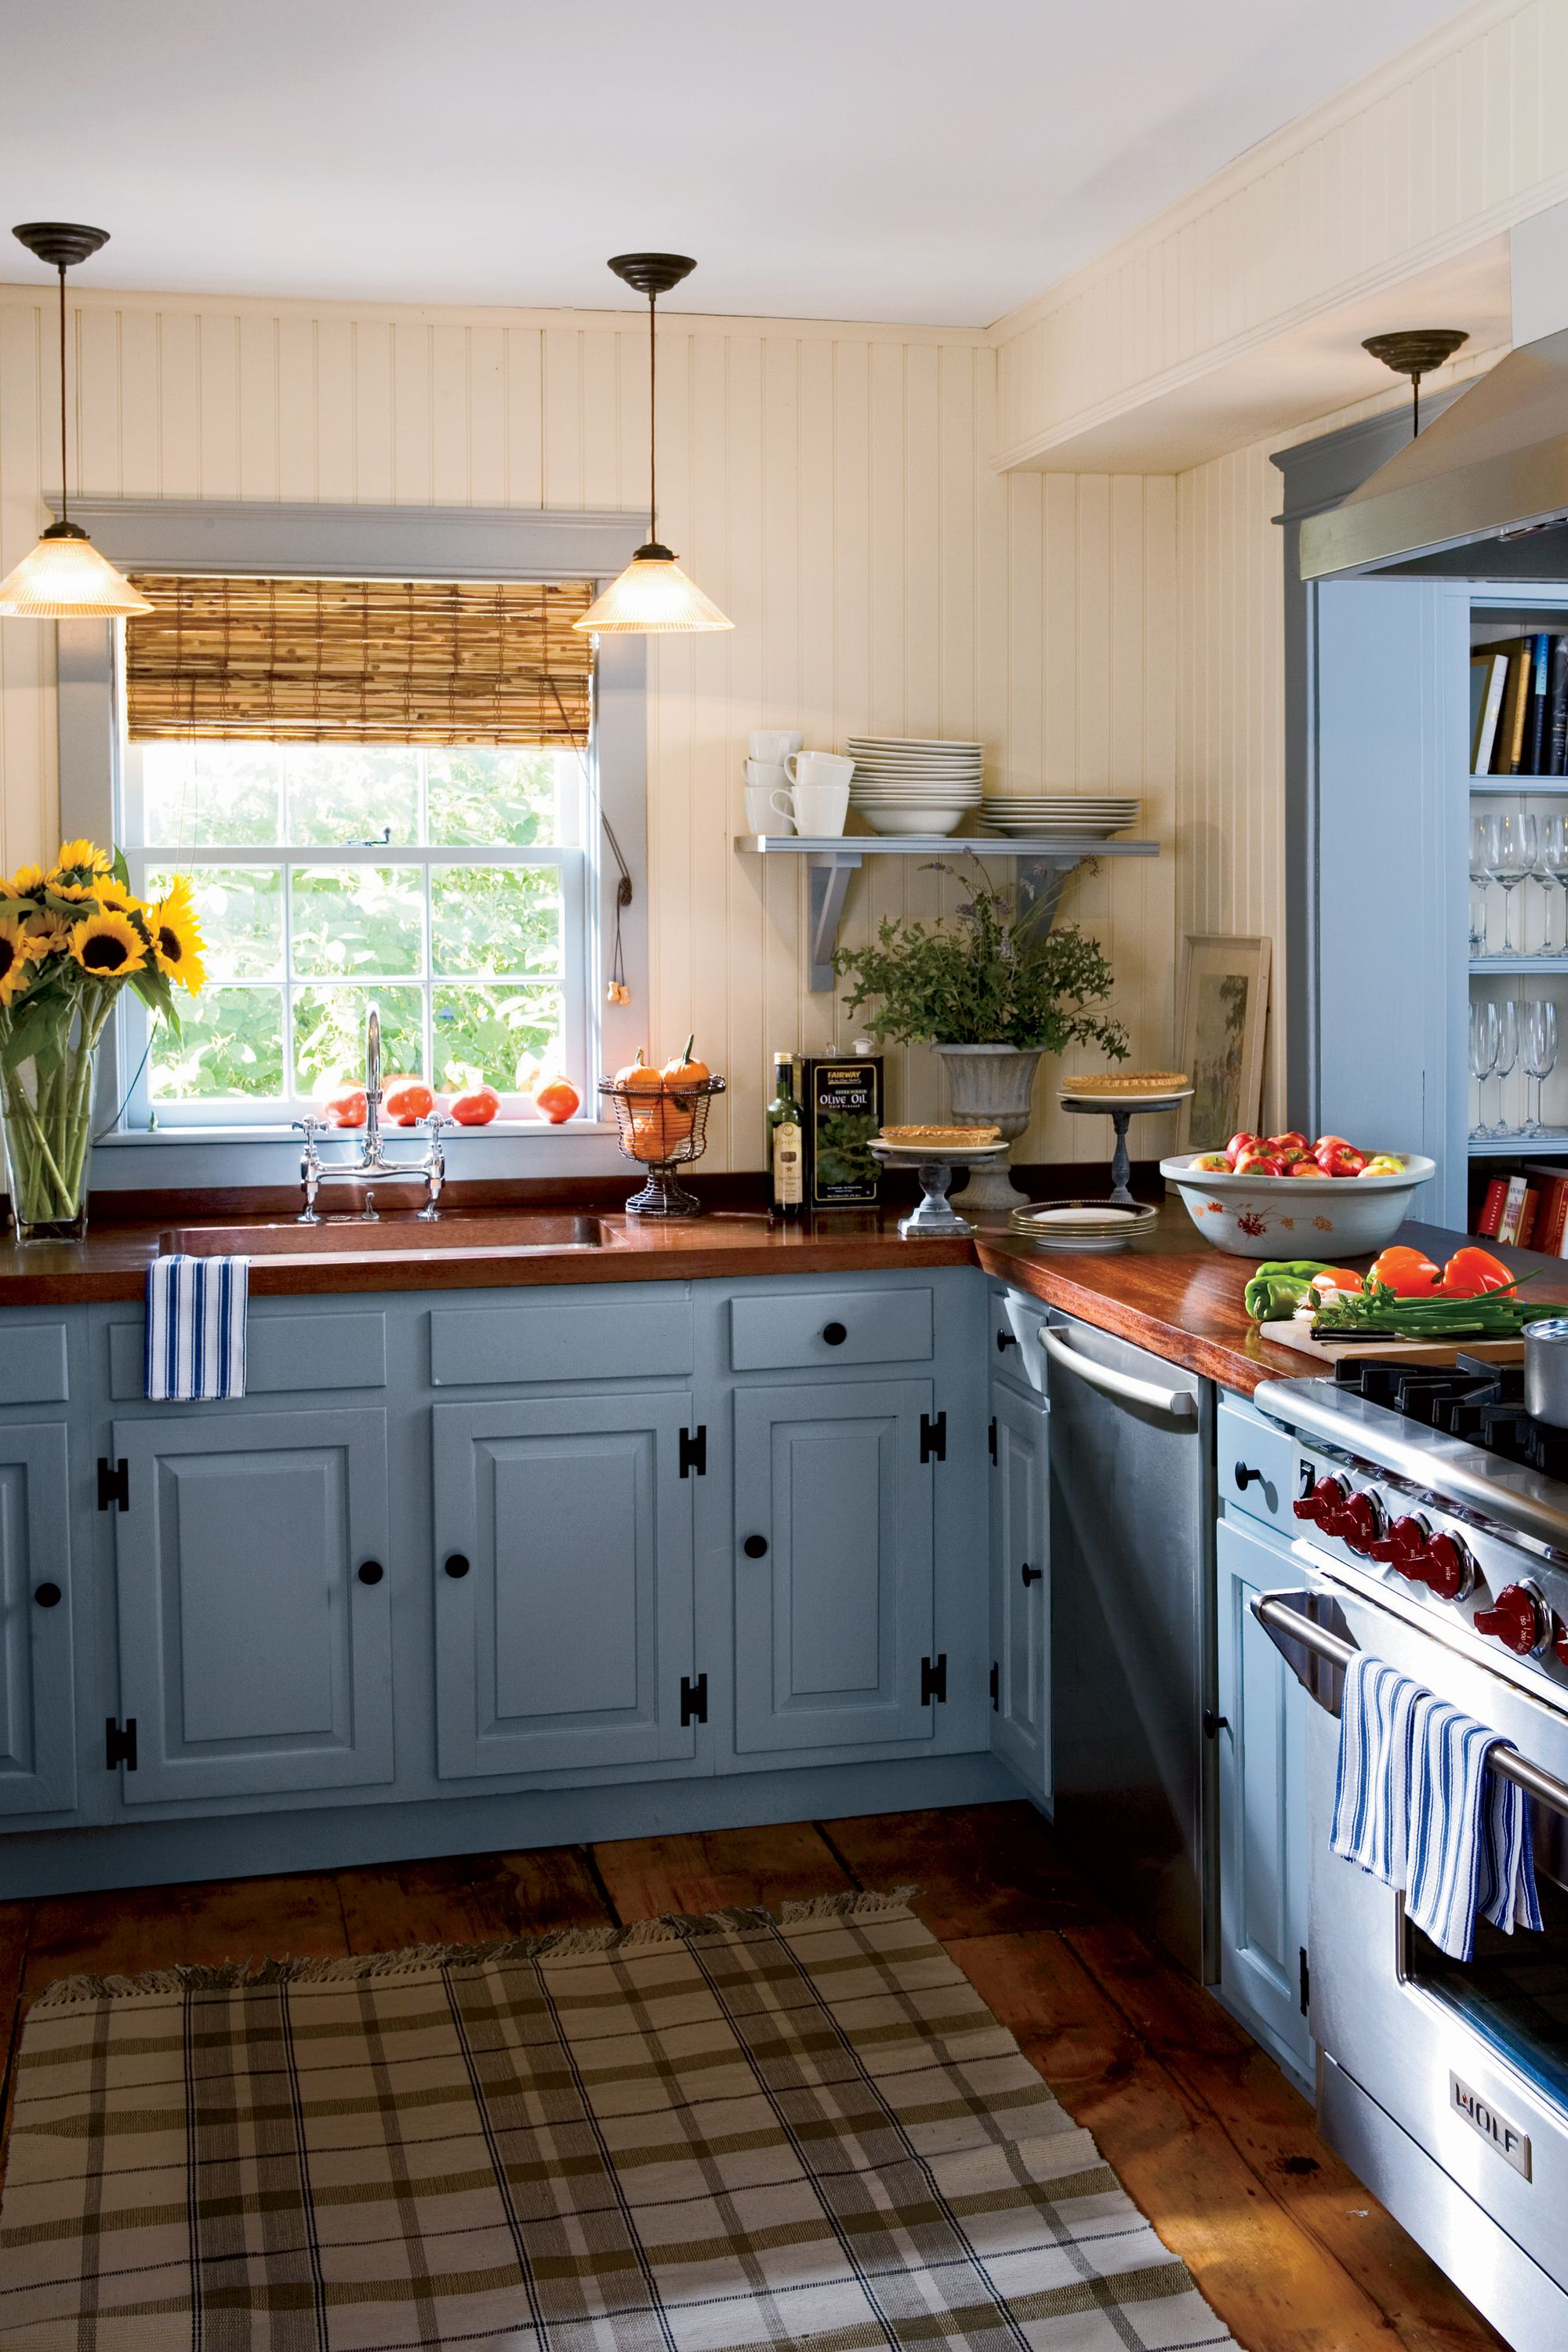 15 Ways To Keep Your Kitchen Cool On Hot Summer Days